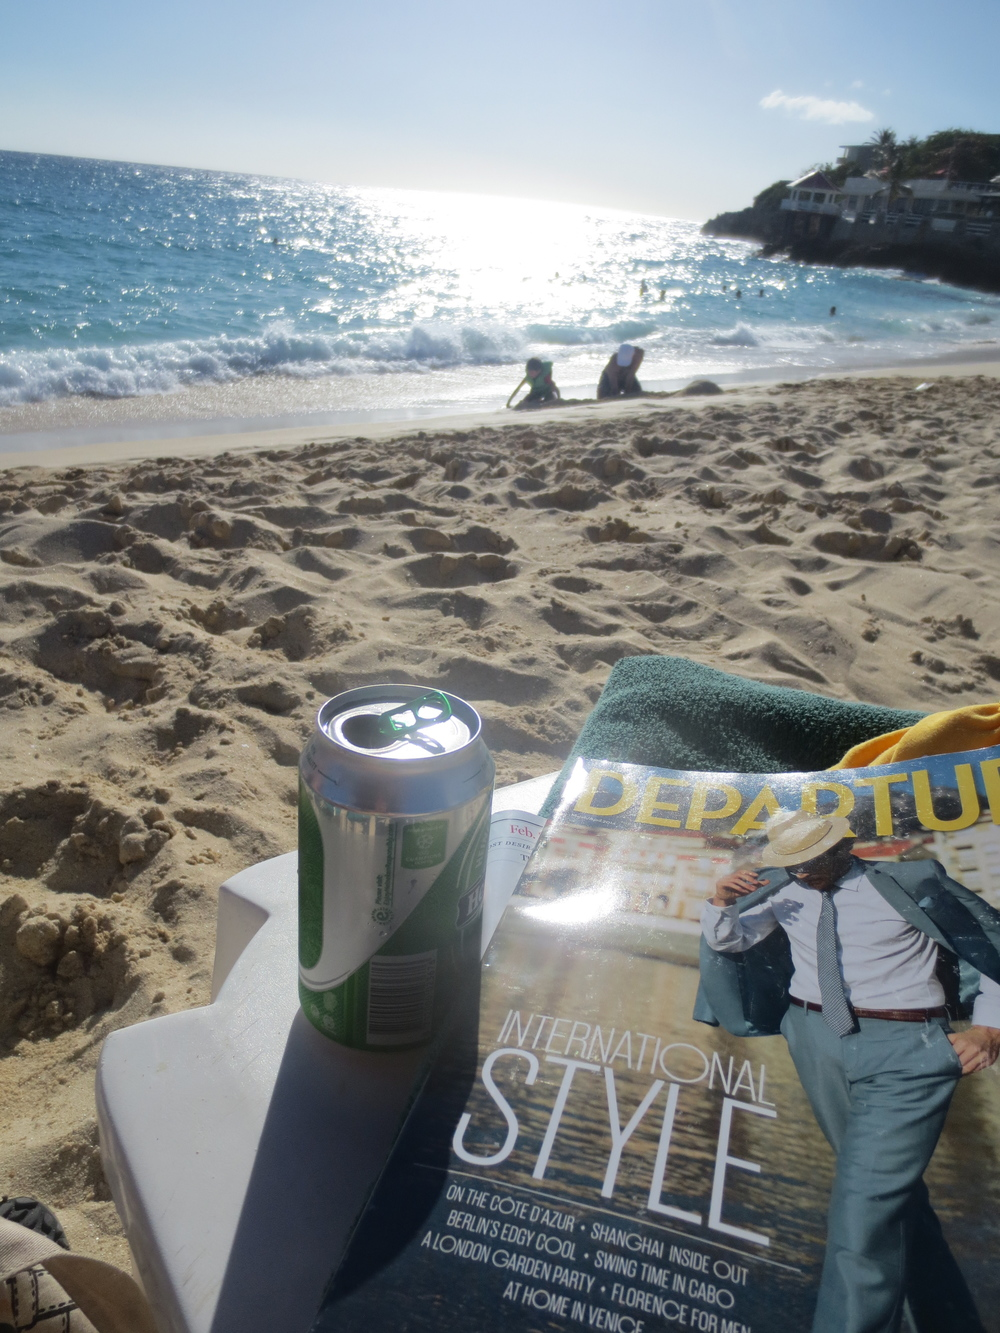 Nothing says paradise quite like a beach, beer, and mag.